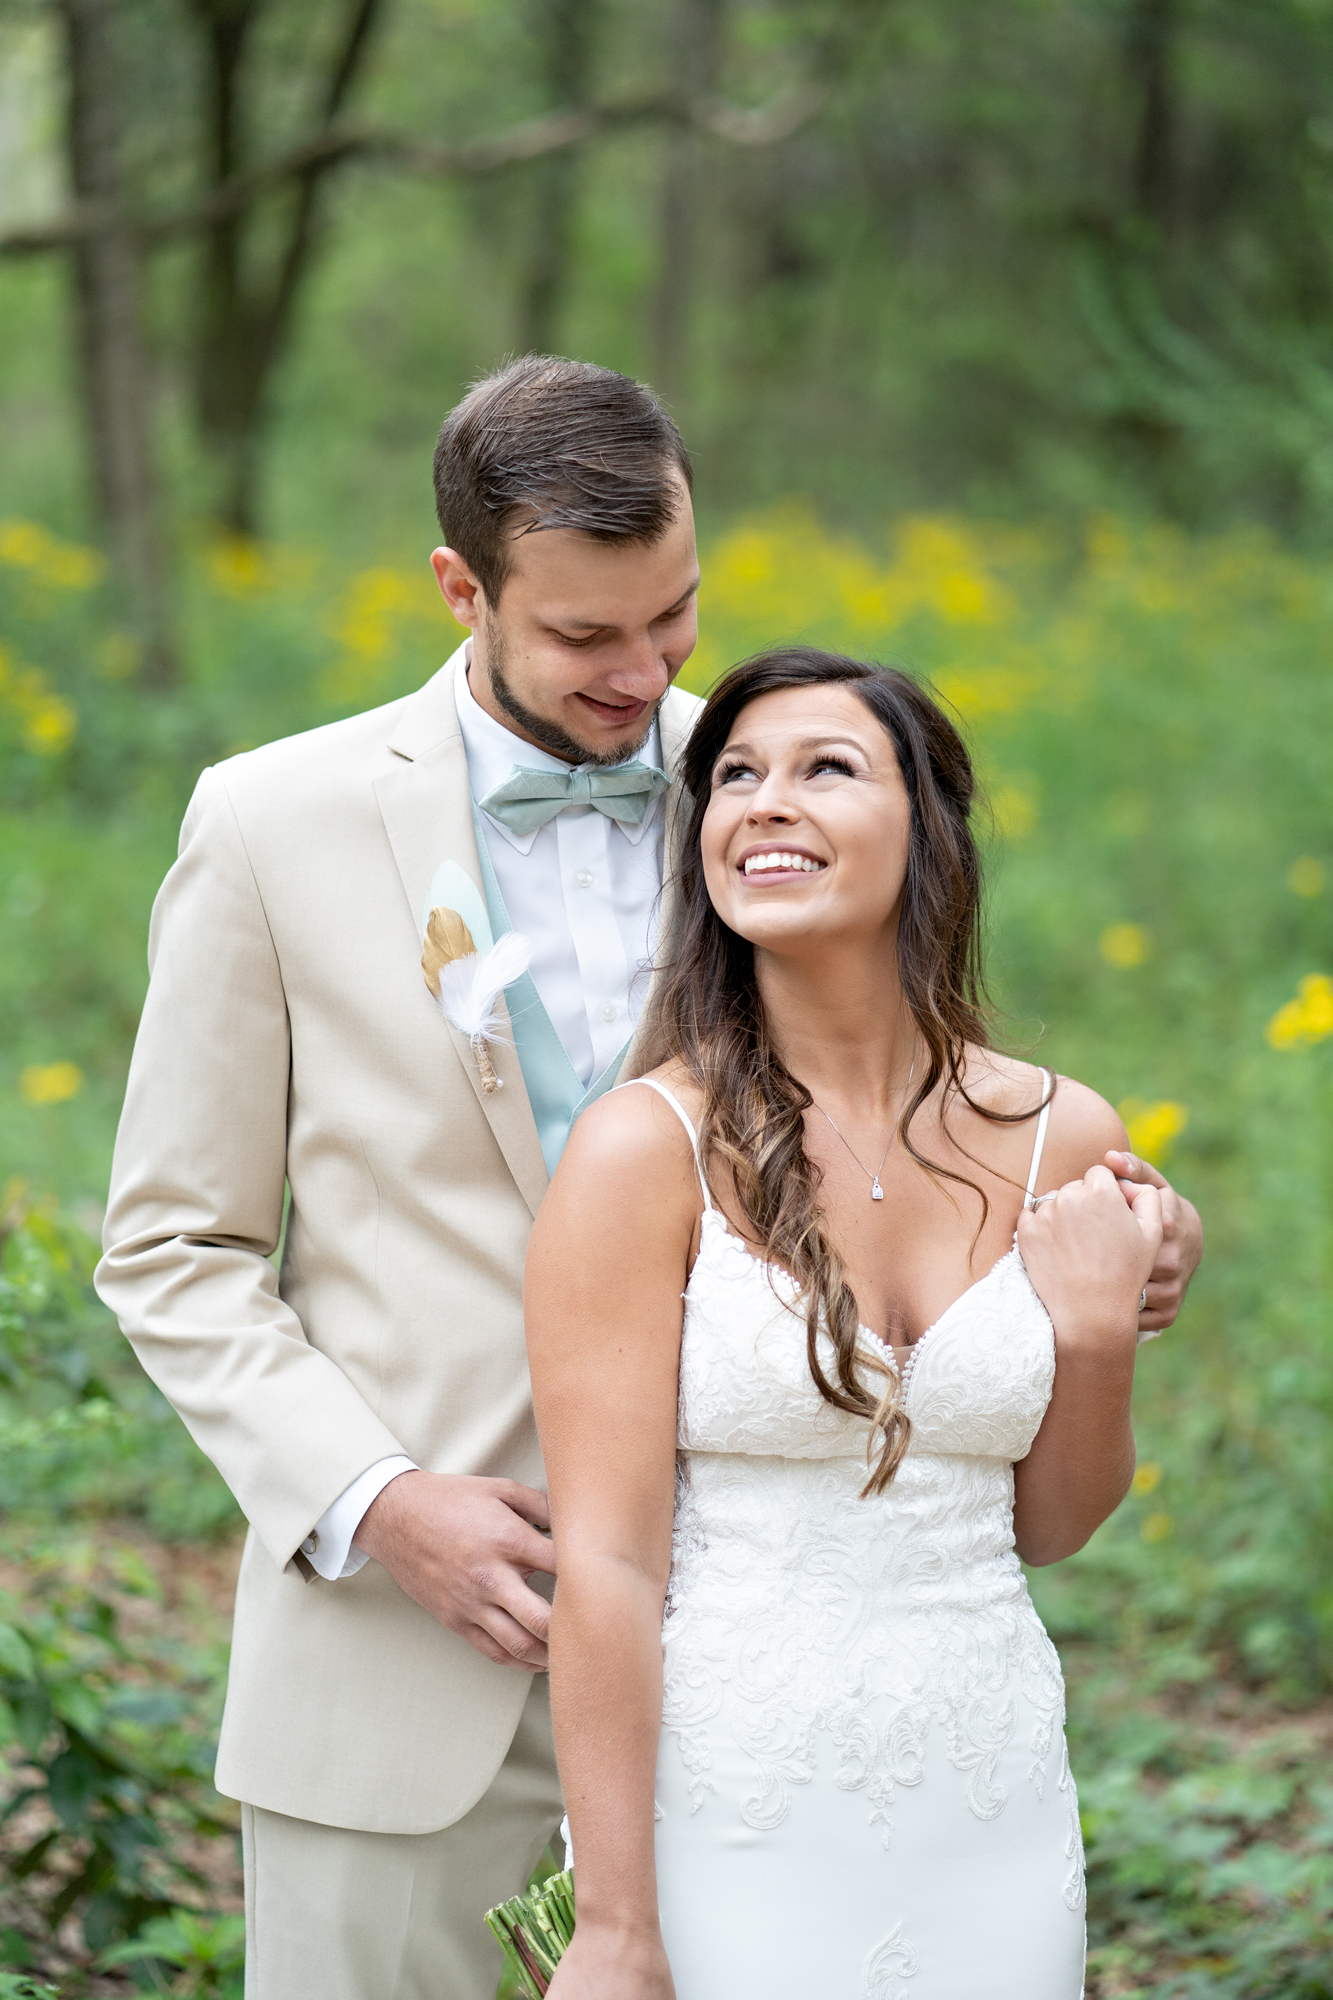 Fairhope-Alabama-Wedding-Photographers-Nick-Drollette-Photography-147.jpg